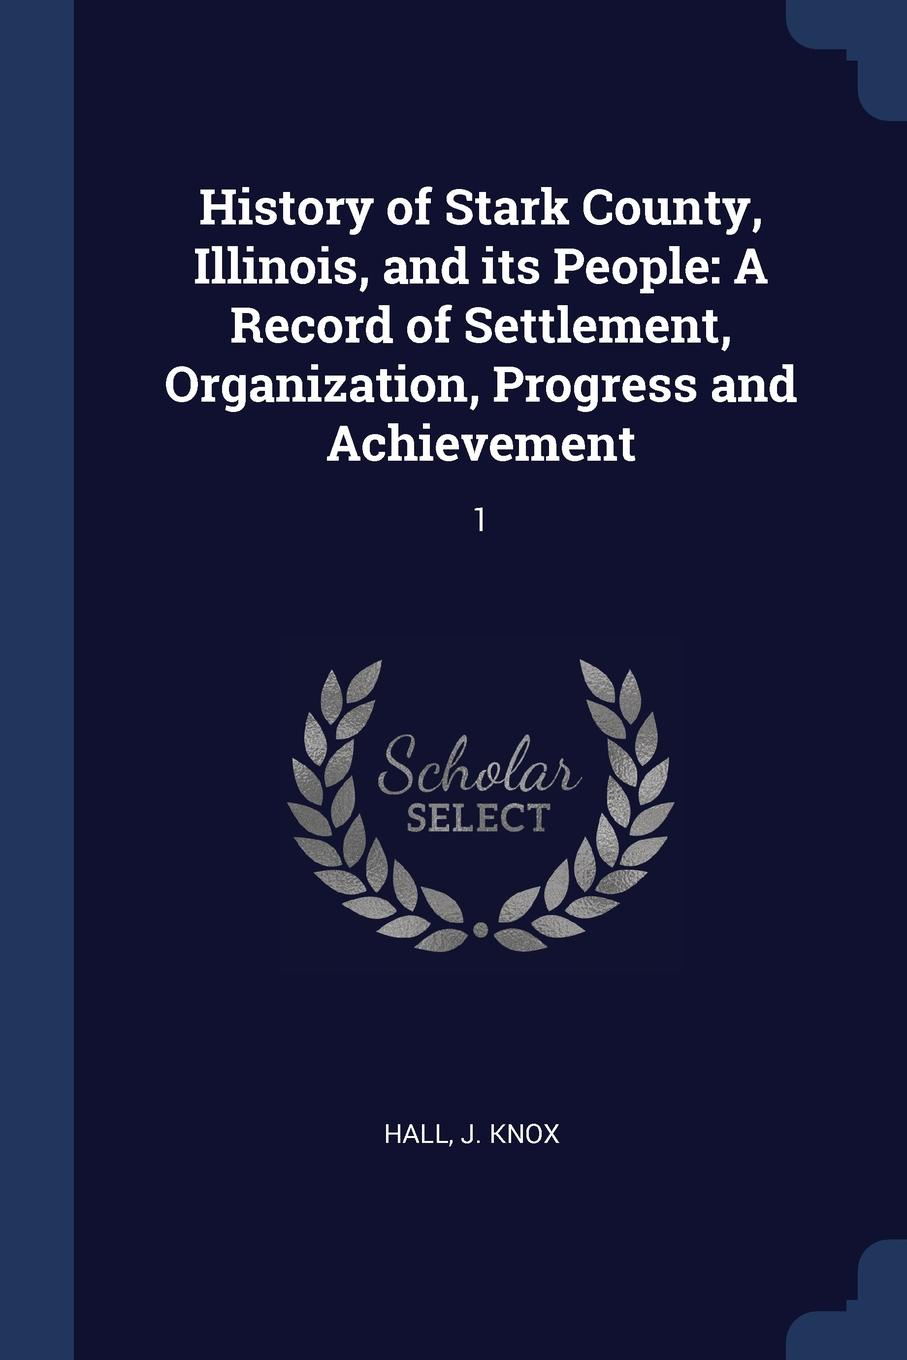 J Knox Hall History of Stark County, Illinois, and its People. A Record of Settlement, Organization, Progress and Achievement: 1